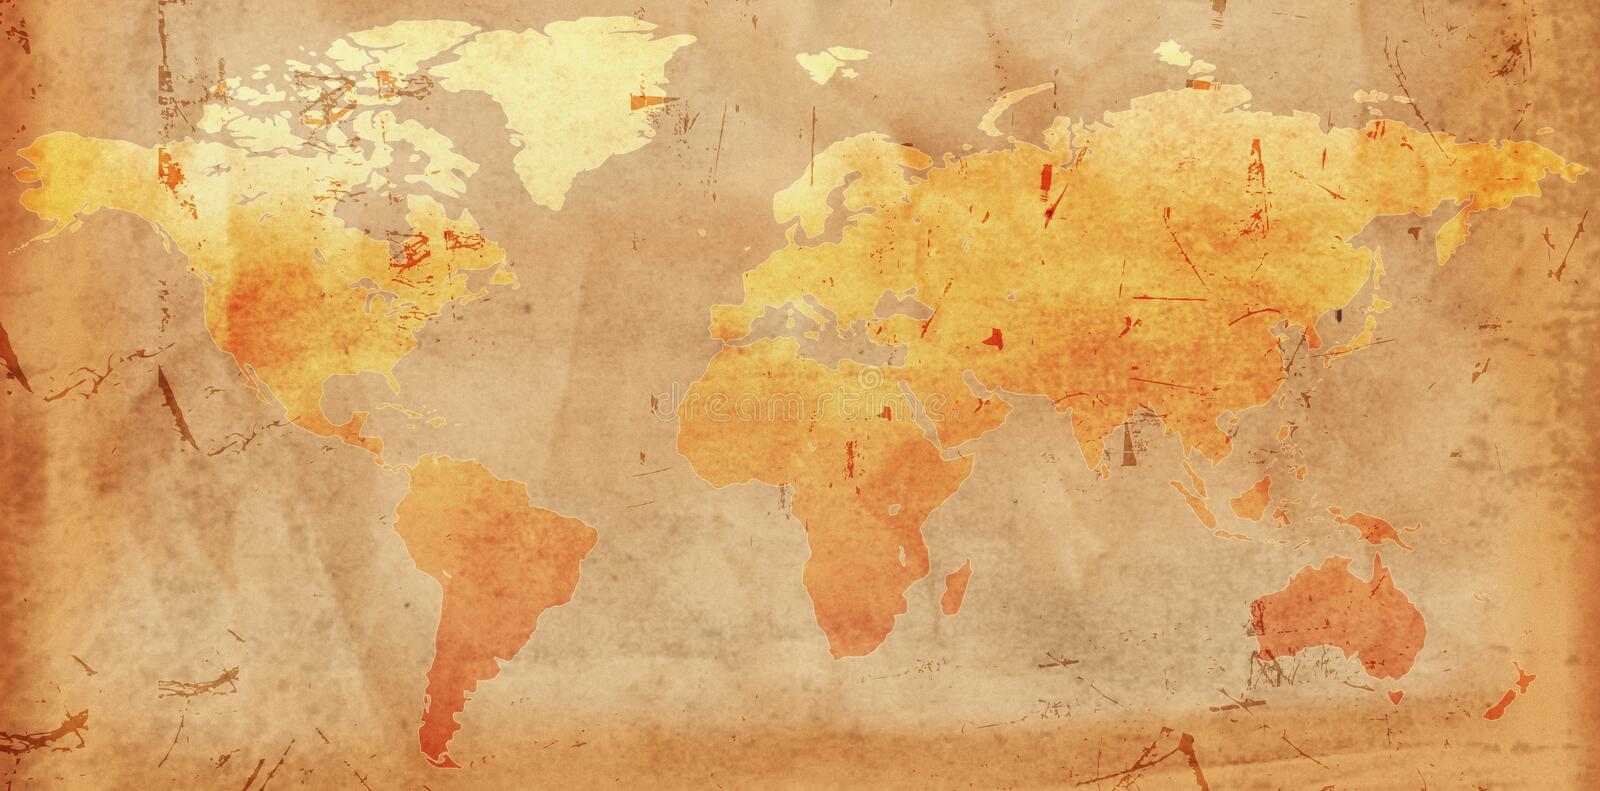 Vintage world map royalty free stock images